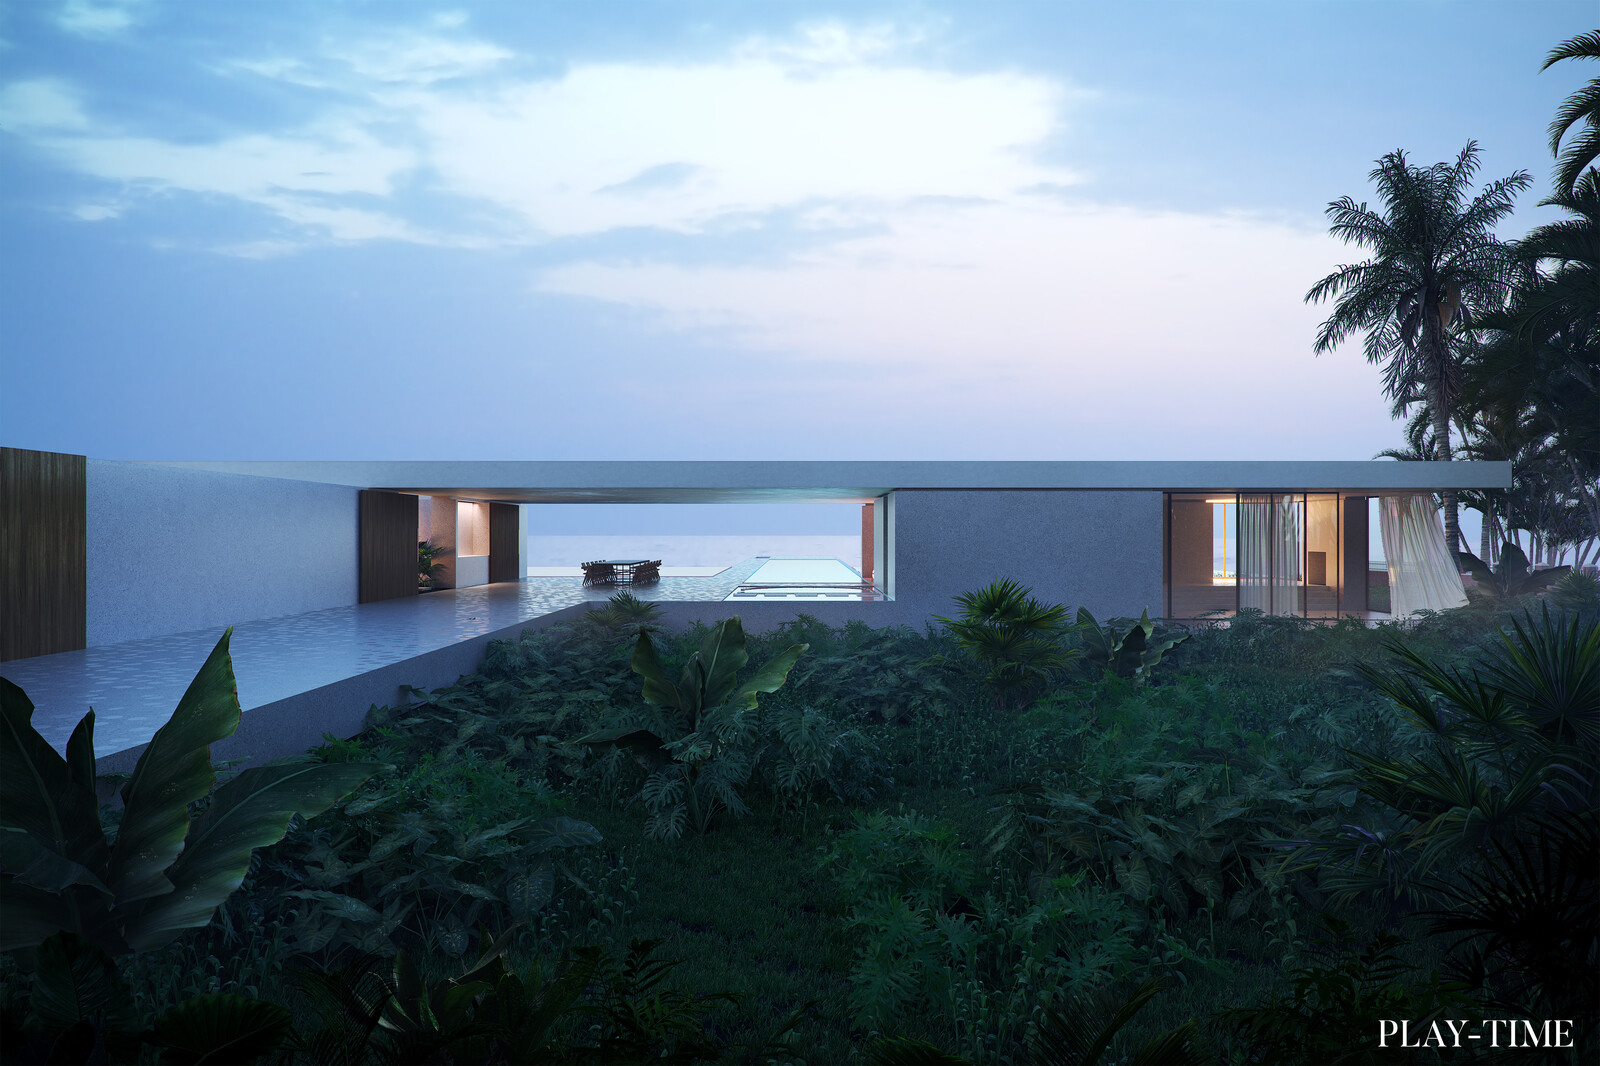 House by the ocean